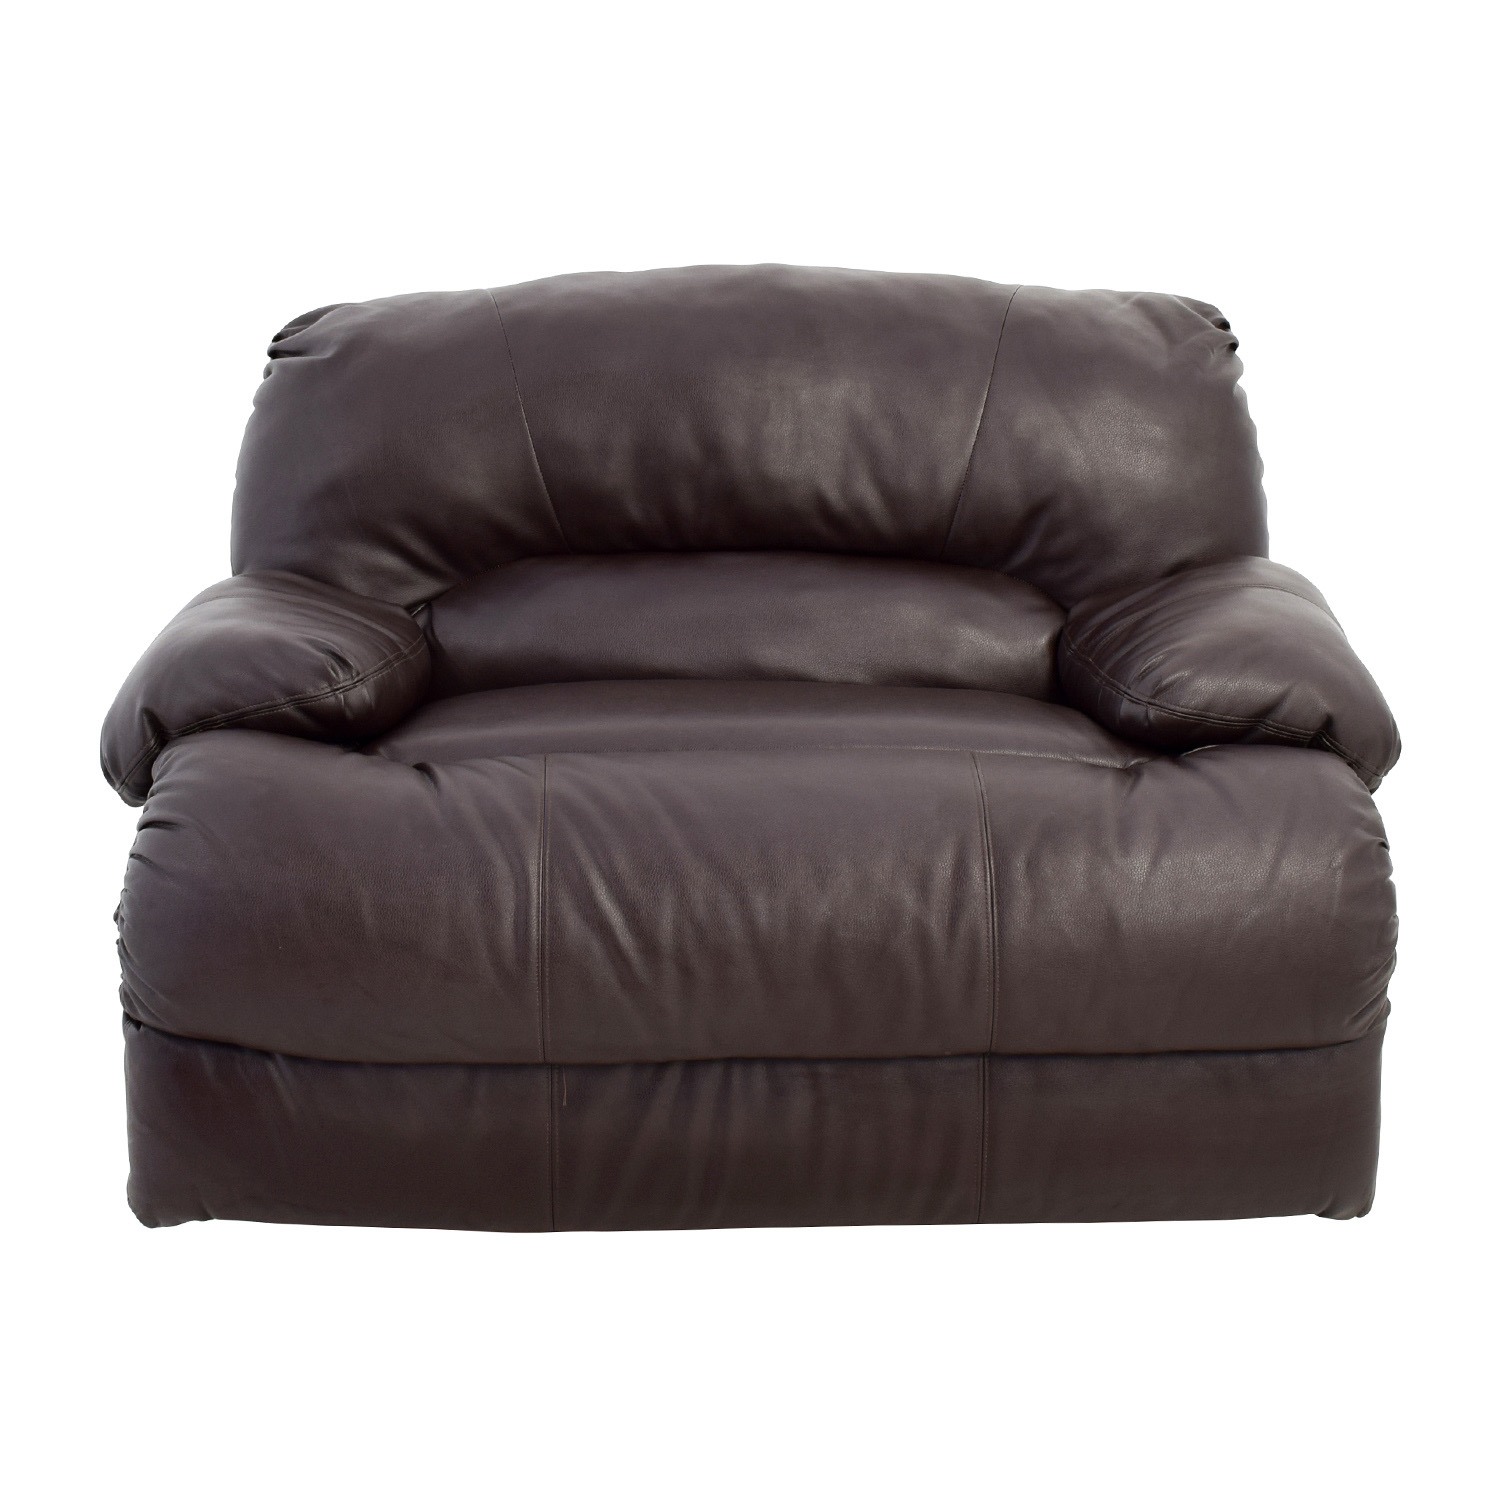 Brown Leather Reclining Loveseat for sale